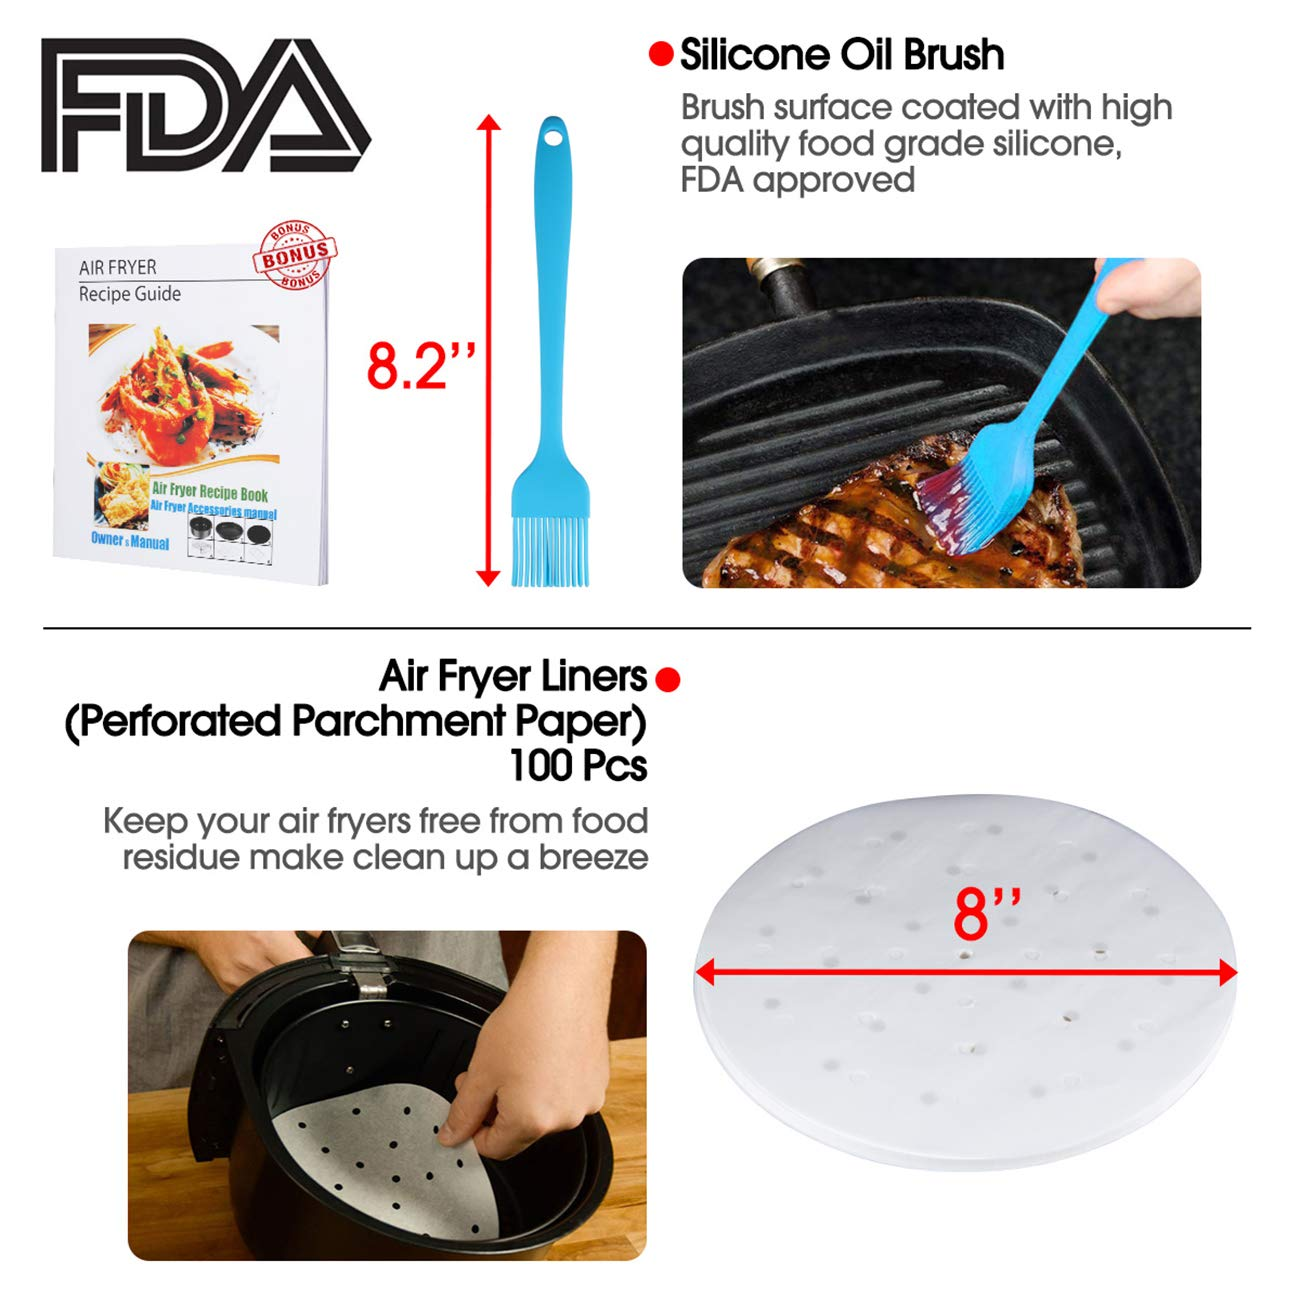 Air Fryer Accessories, XL Air Fryer Accessories with Recipe Cookbook for Gowise Phillips USA Cozyna Airfryer, Set of 10, Deep Fryer Accessories, Fit all 3.7QT-5.3QT-5.8QT-6.8QT, FDA Approved, BPA Free by RASSE (Image #5)